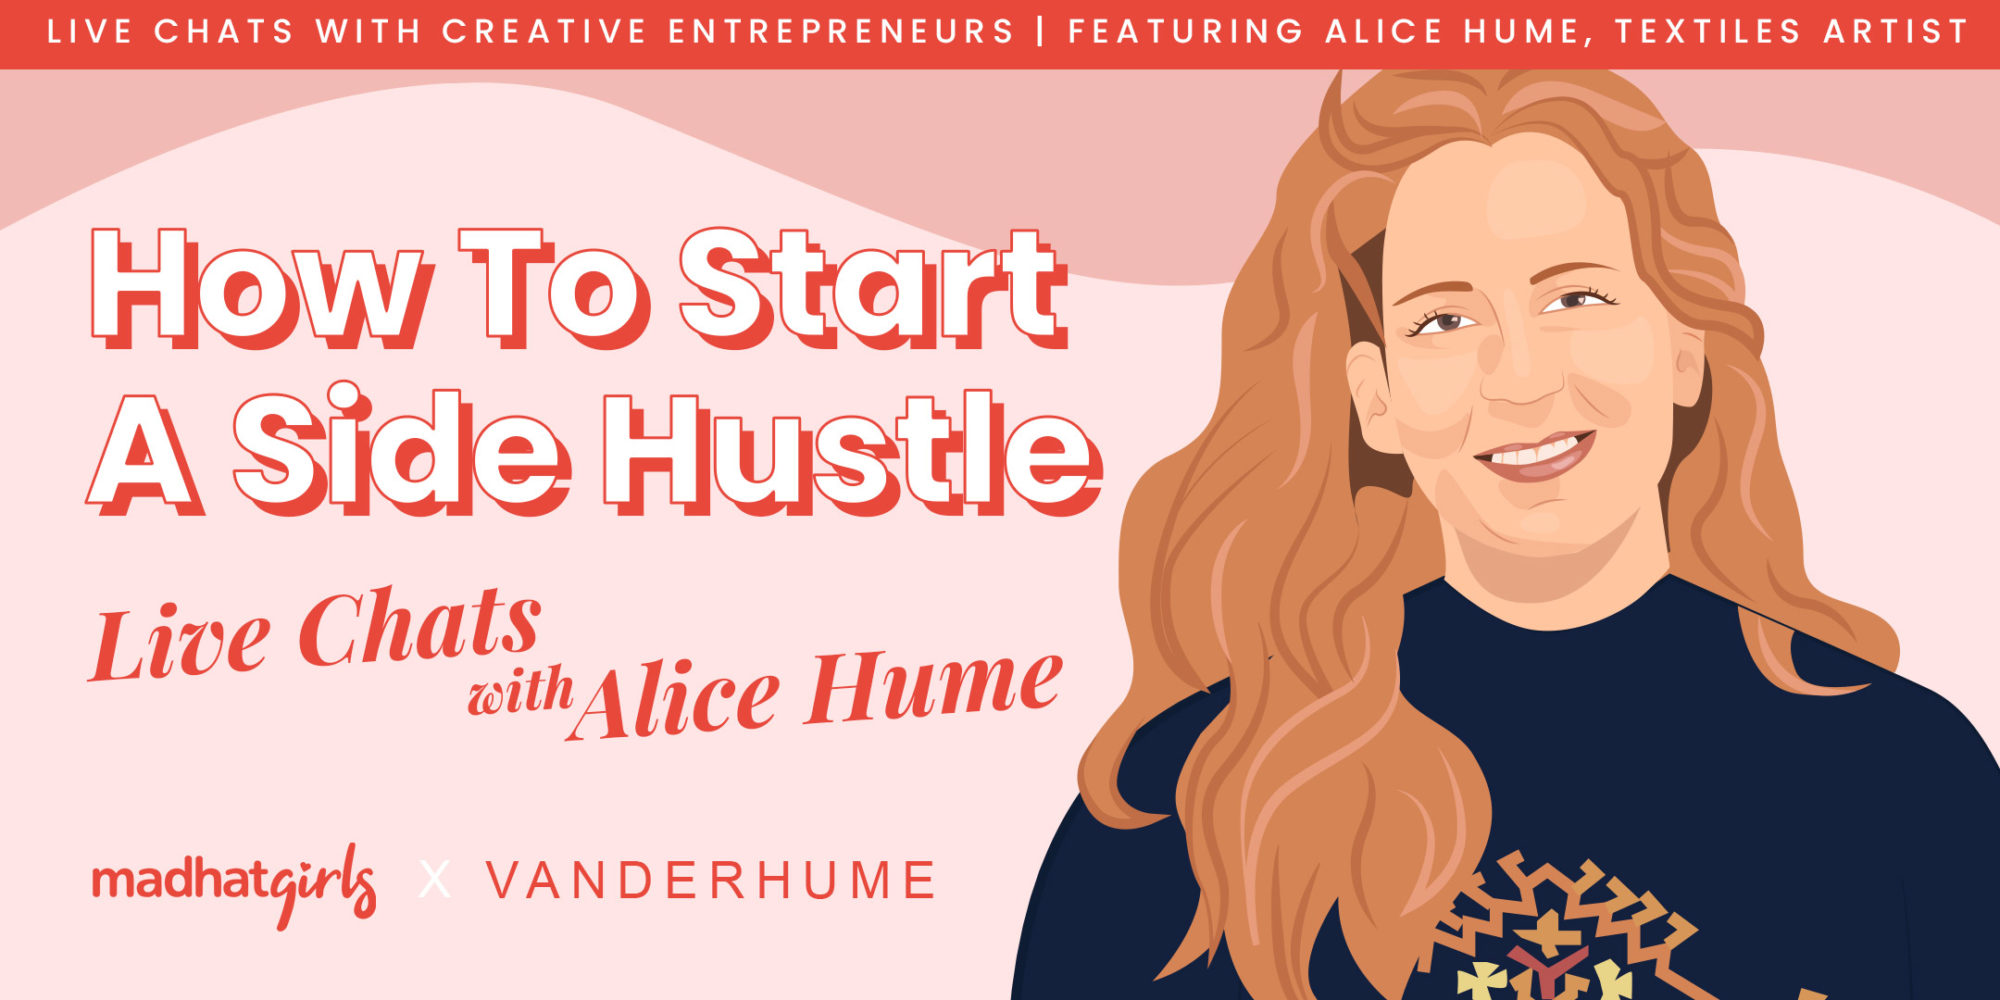 How TO Start A Side Hustle with Alice Hume